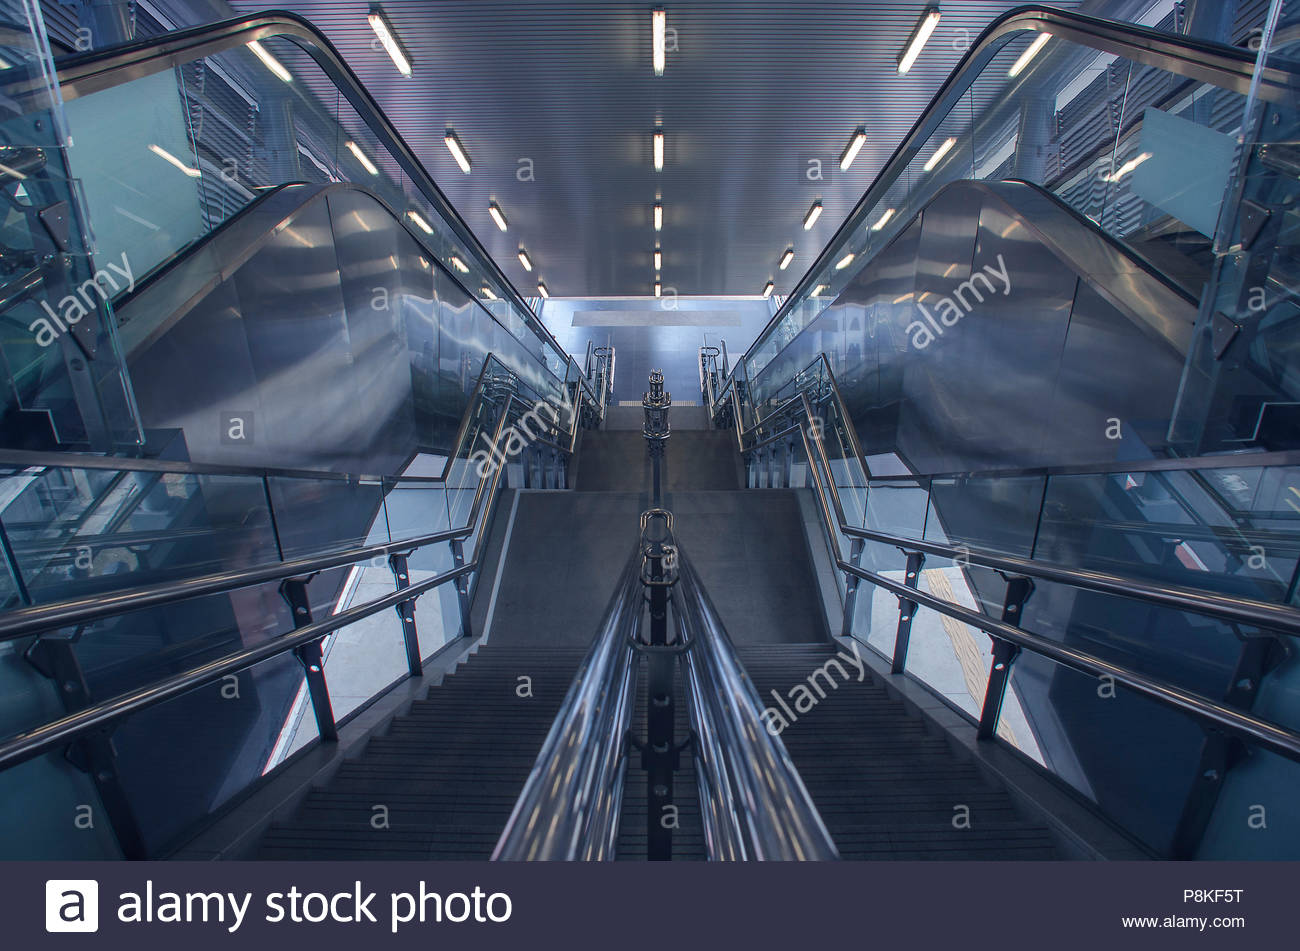 Stairway in mass rail transit station in Kuala Lumpur (Editorial Use Only) - Stock Image